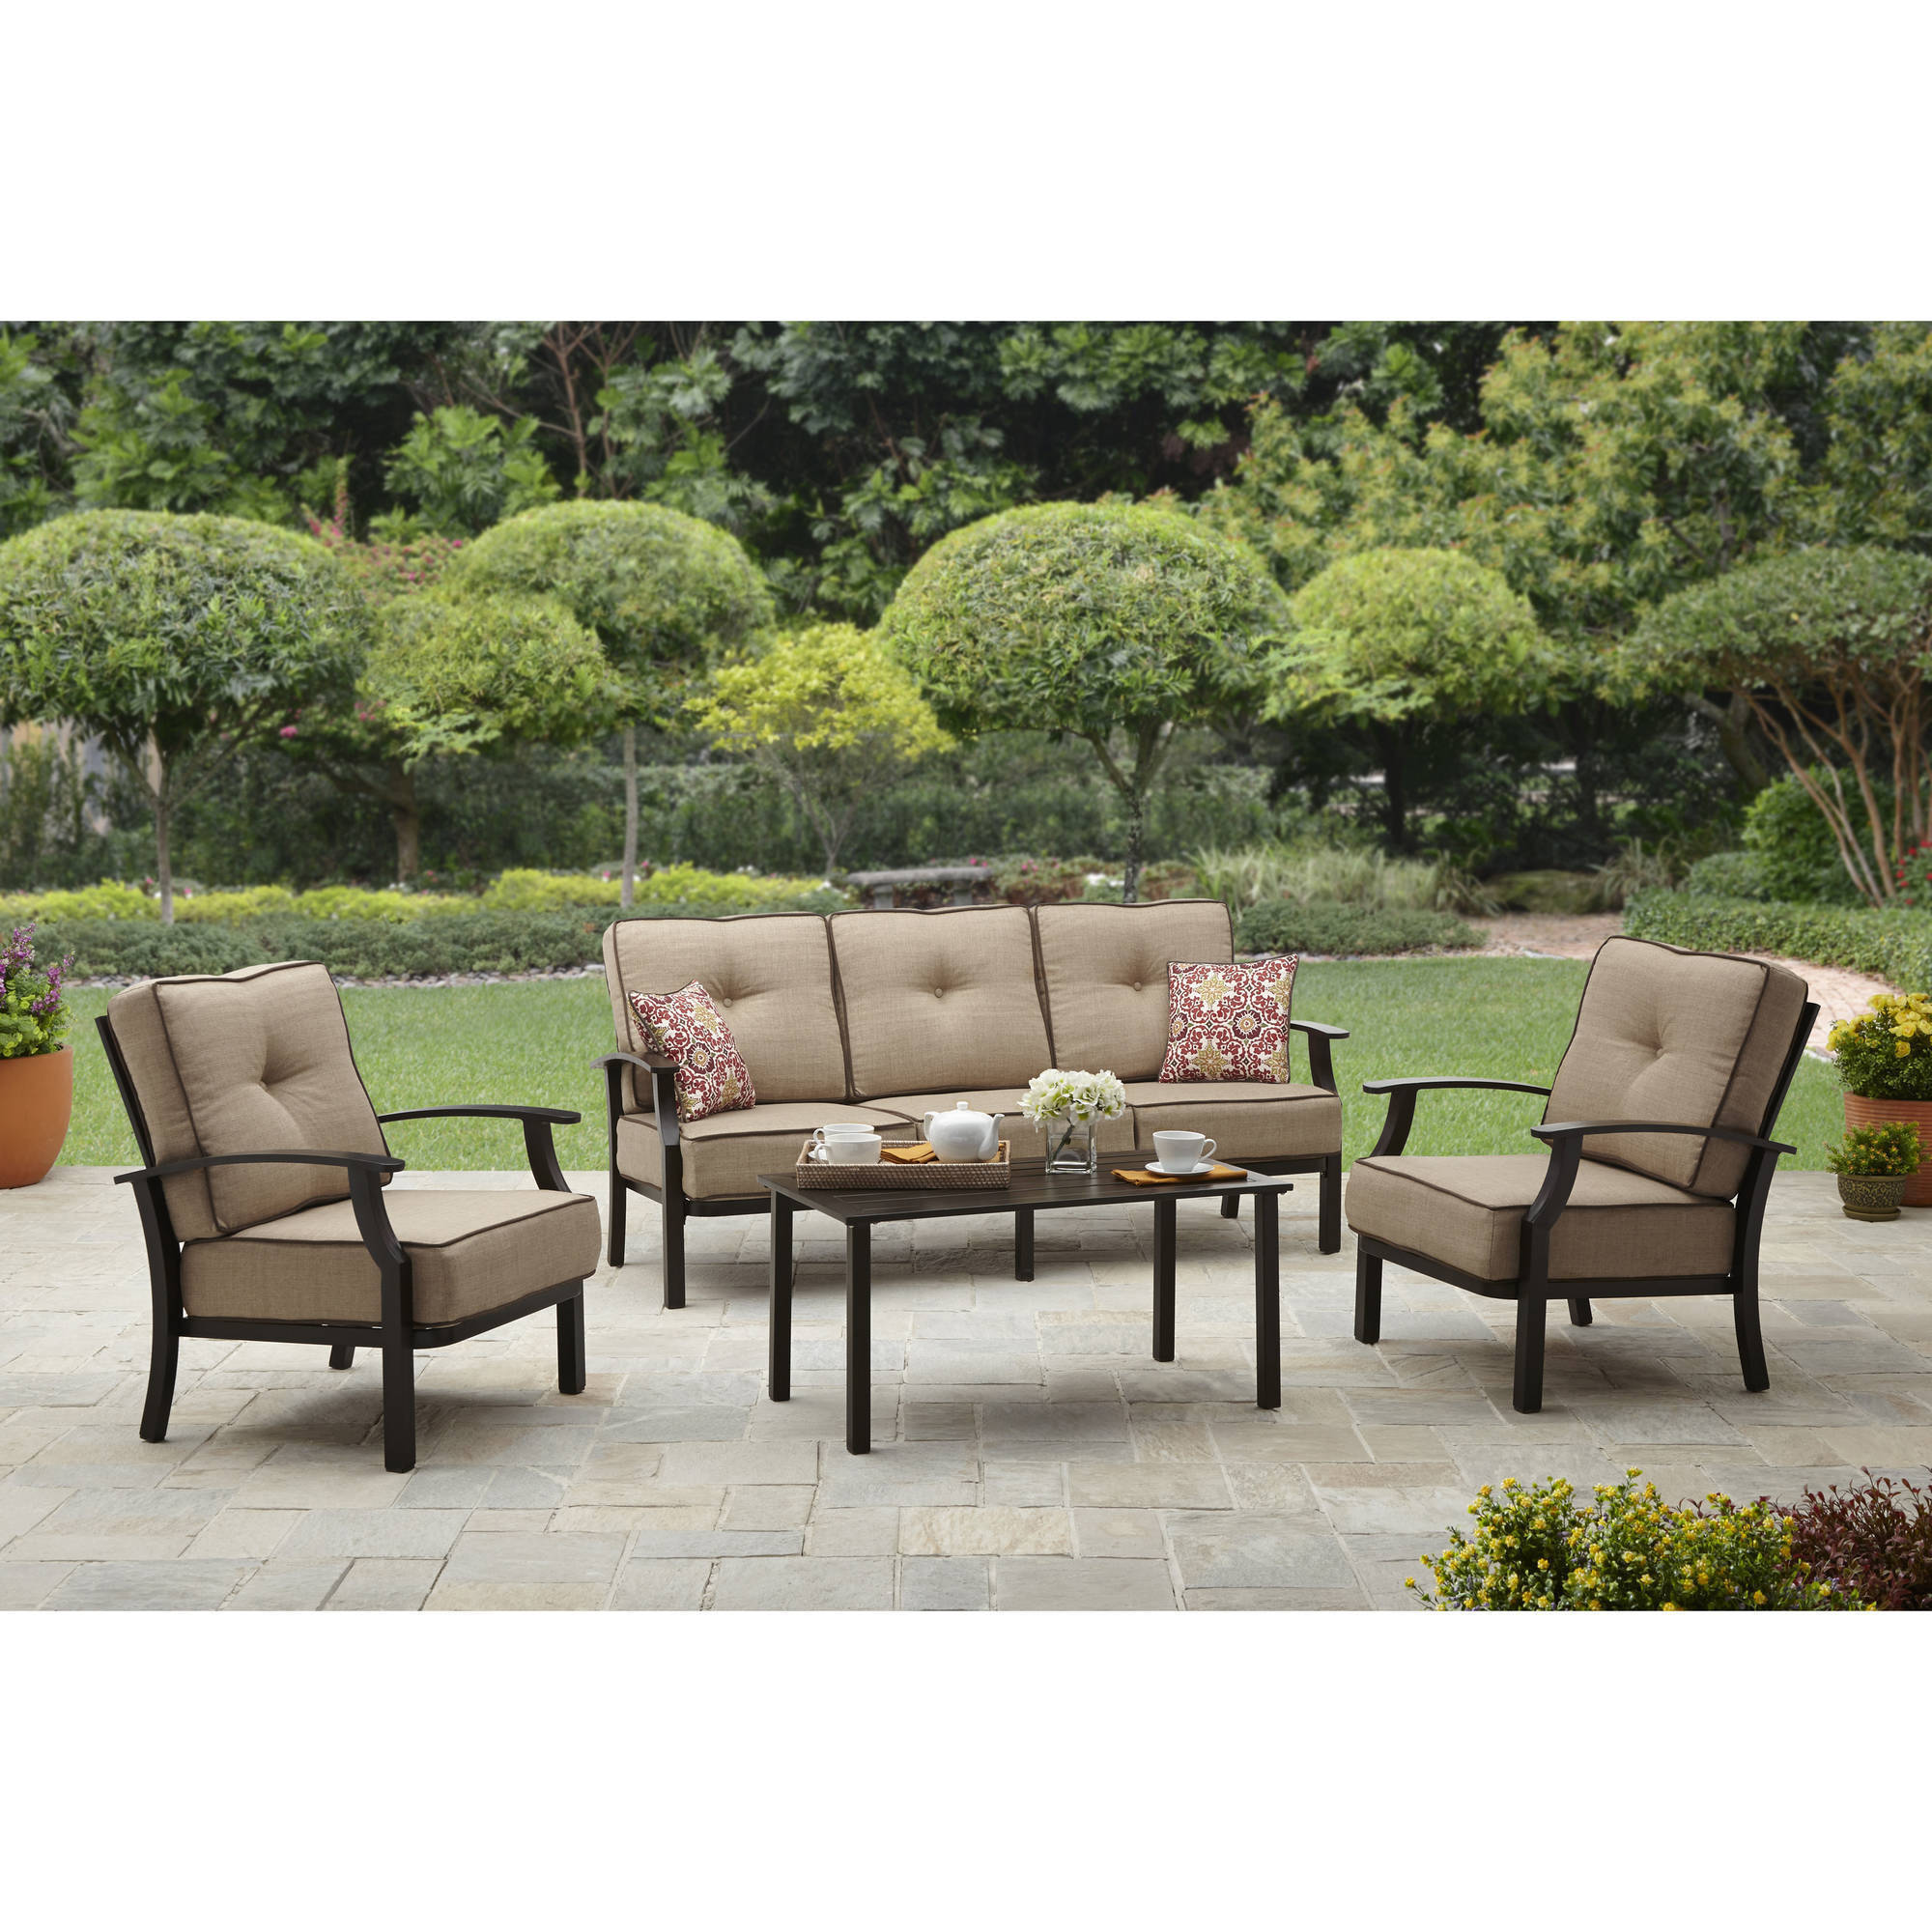 Better Homes Patio Set 2 14 Hus Noorderpad De